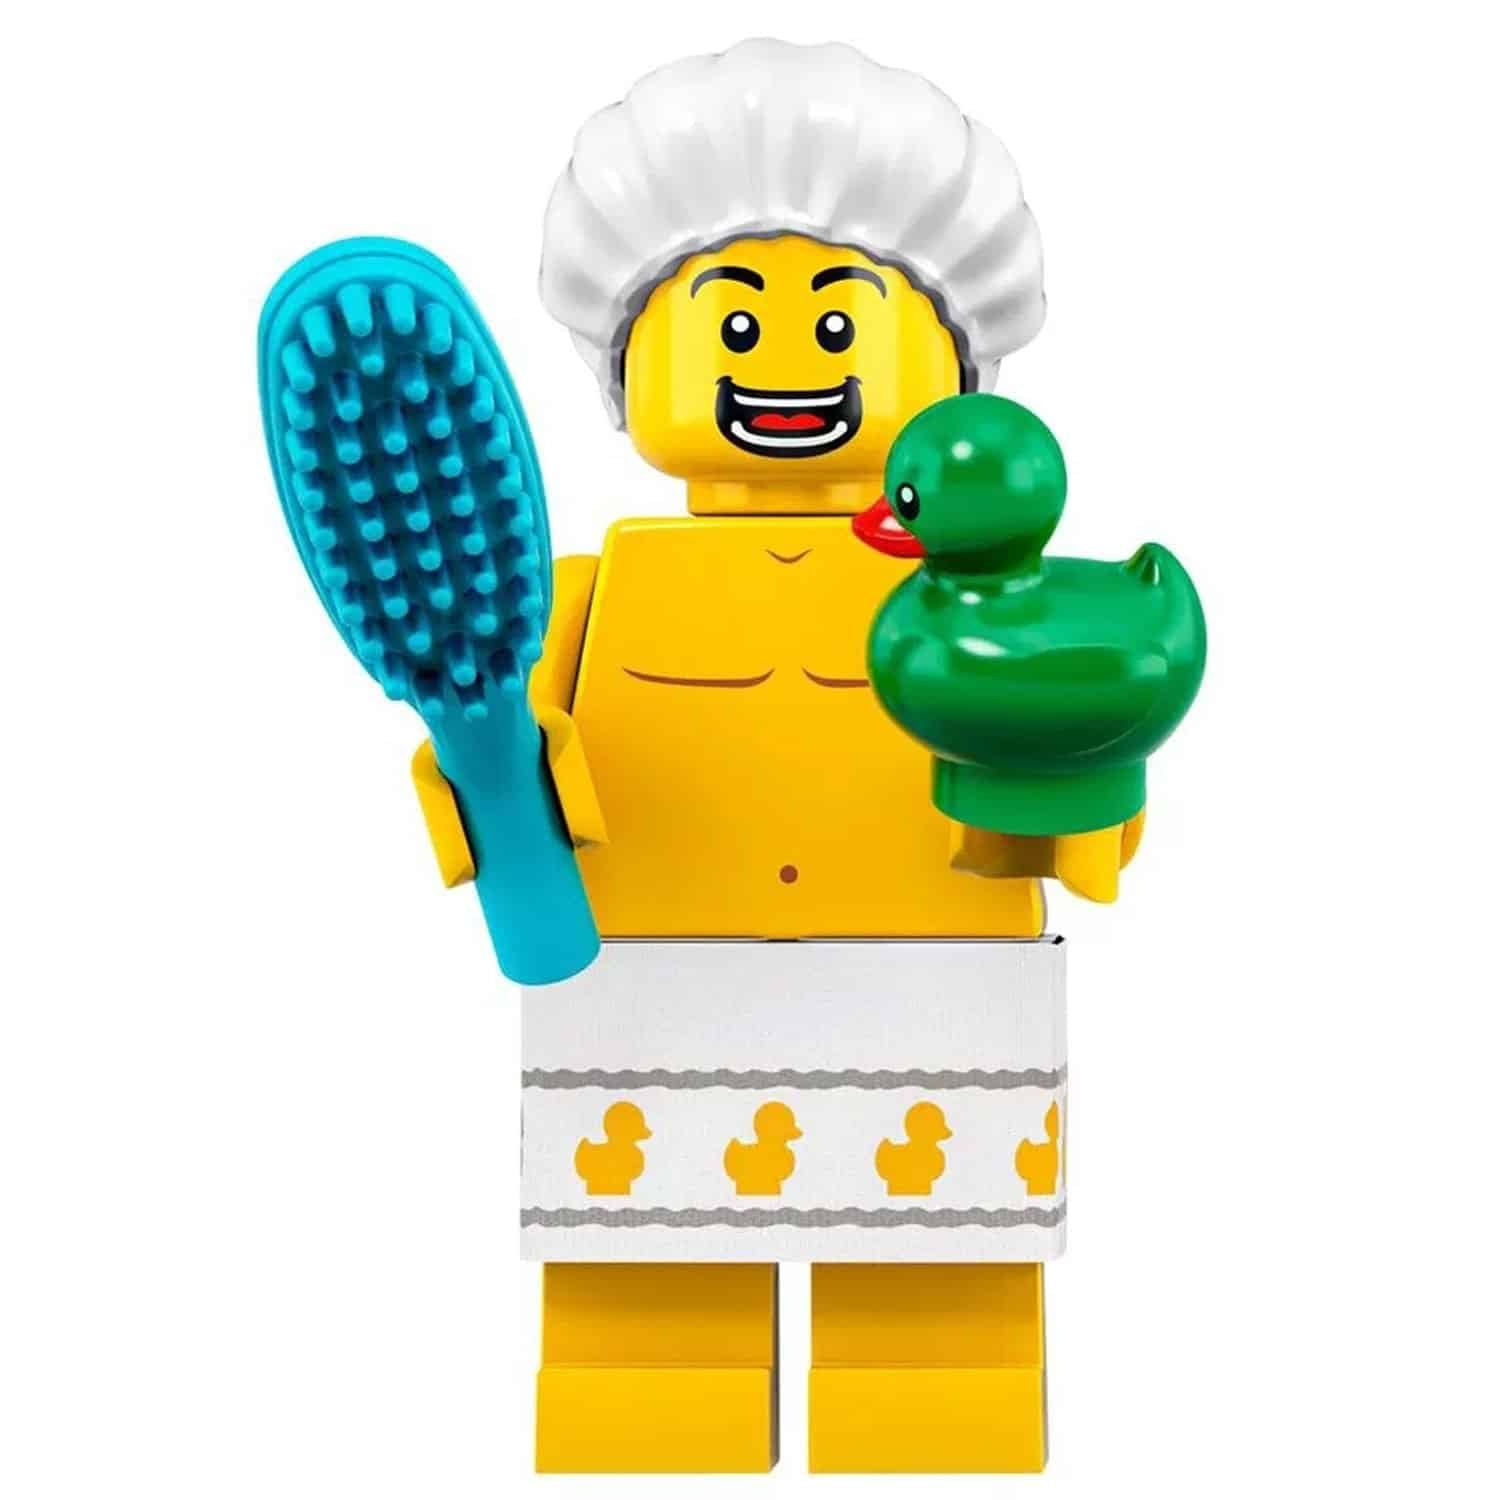 LEGO Bath tub Minifigure and Ducky – Series 19 CMF